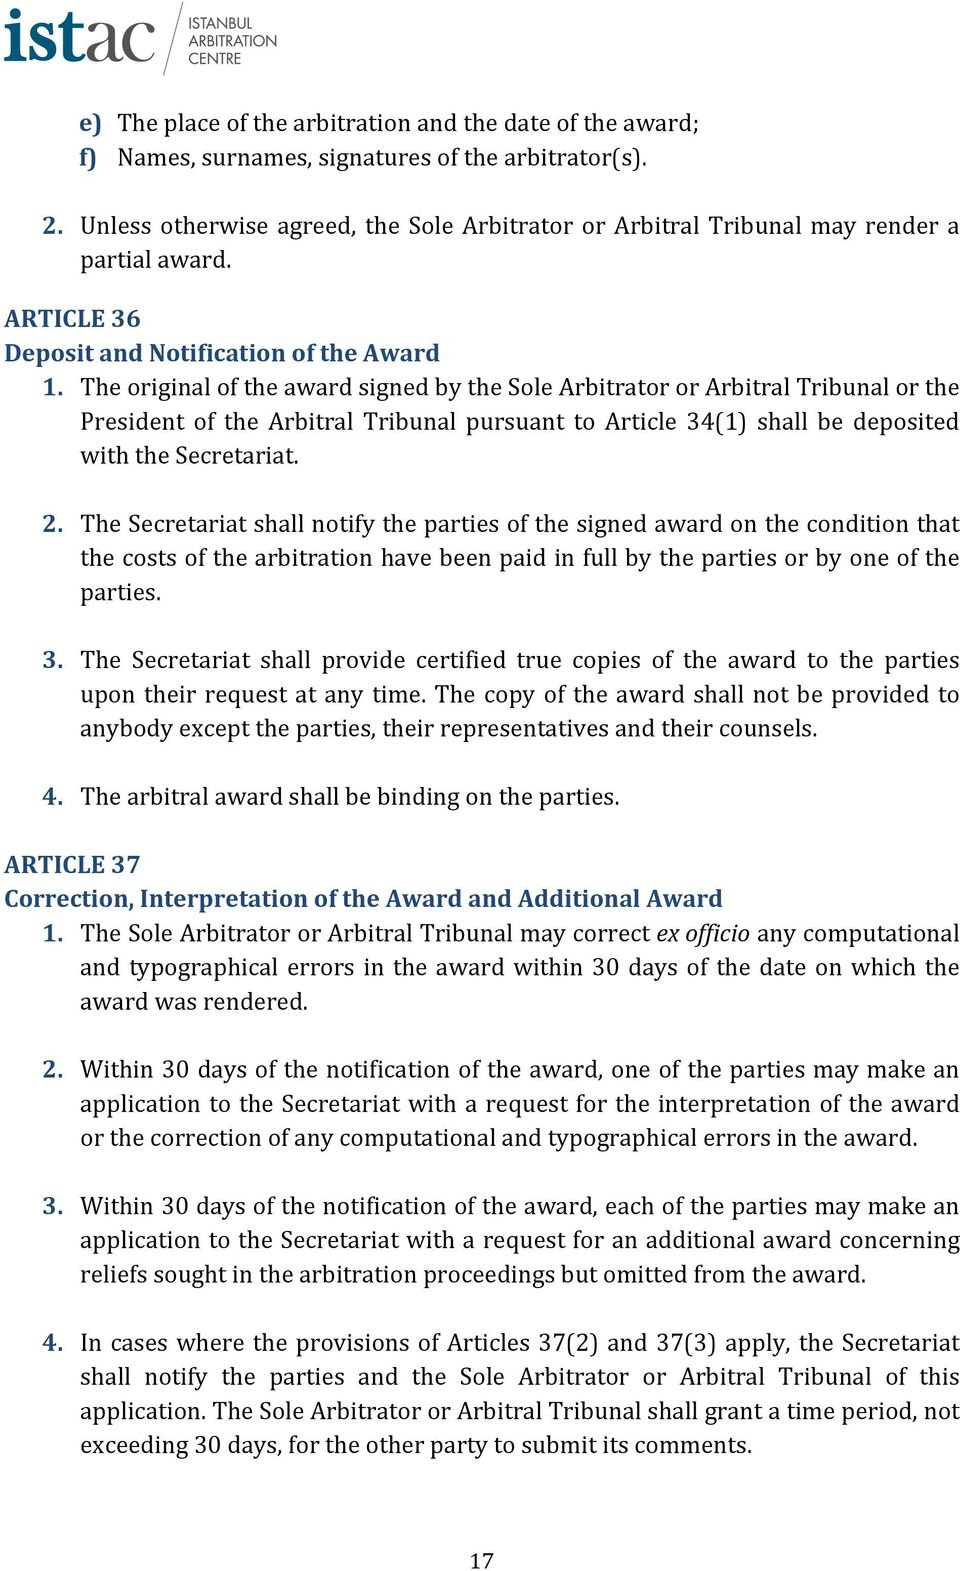 The original of the award signed by the Sole Arbitrator or Arbitral Tribunal or the President of the Arbitral Tribunal pursuant to Article 34(1) shall be deposited with the Secretariat. 2.